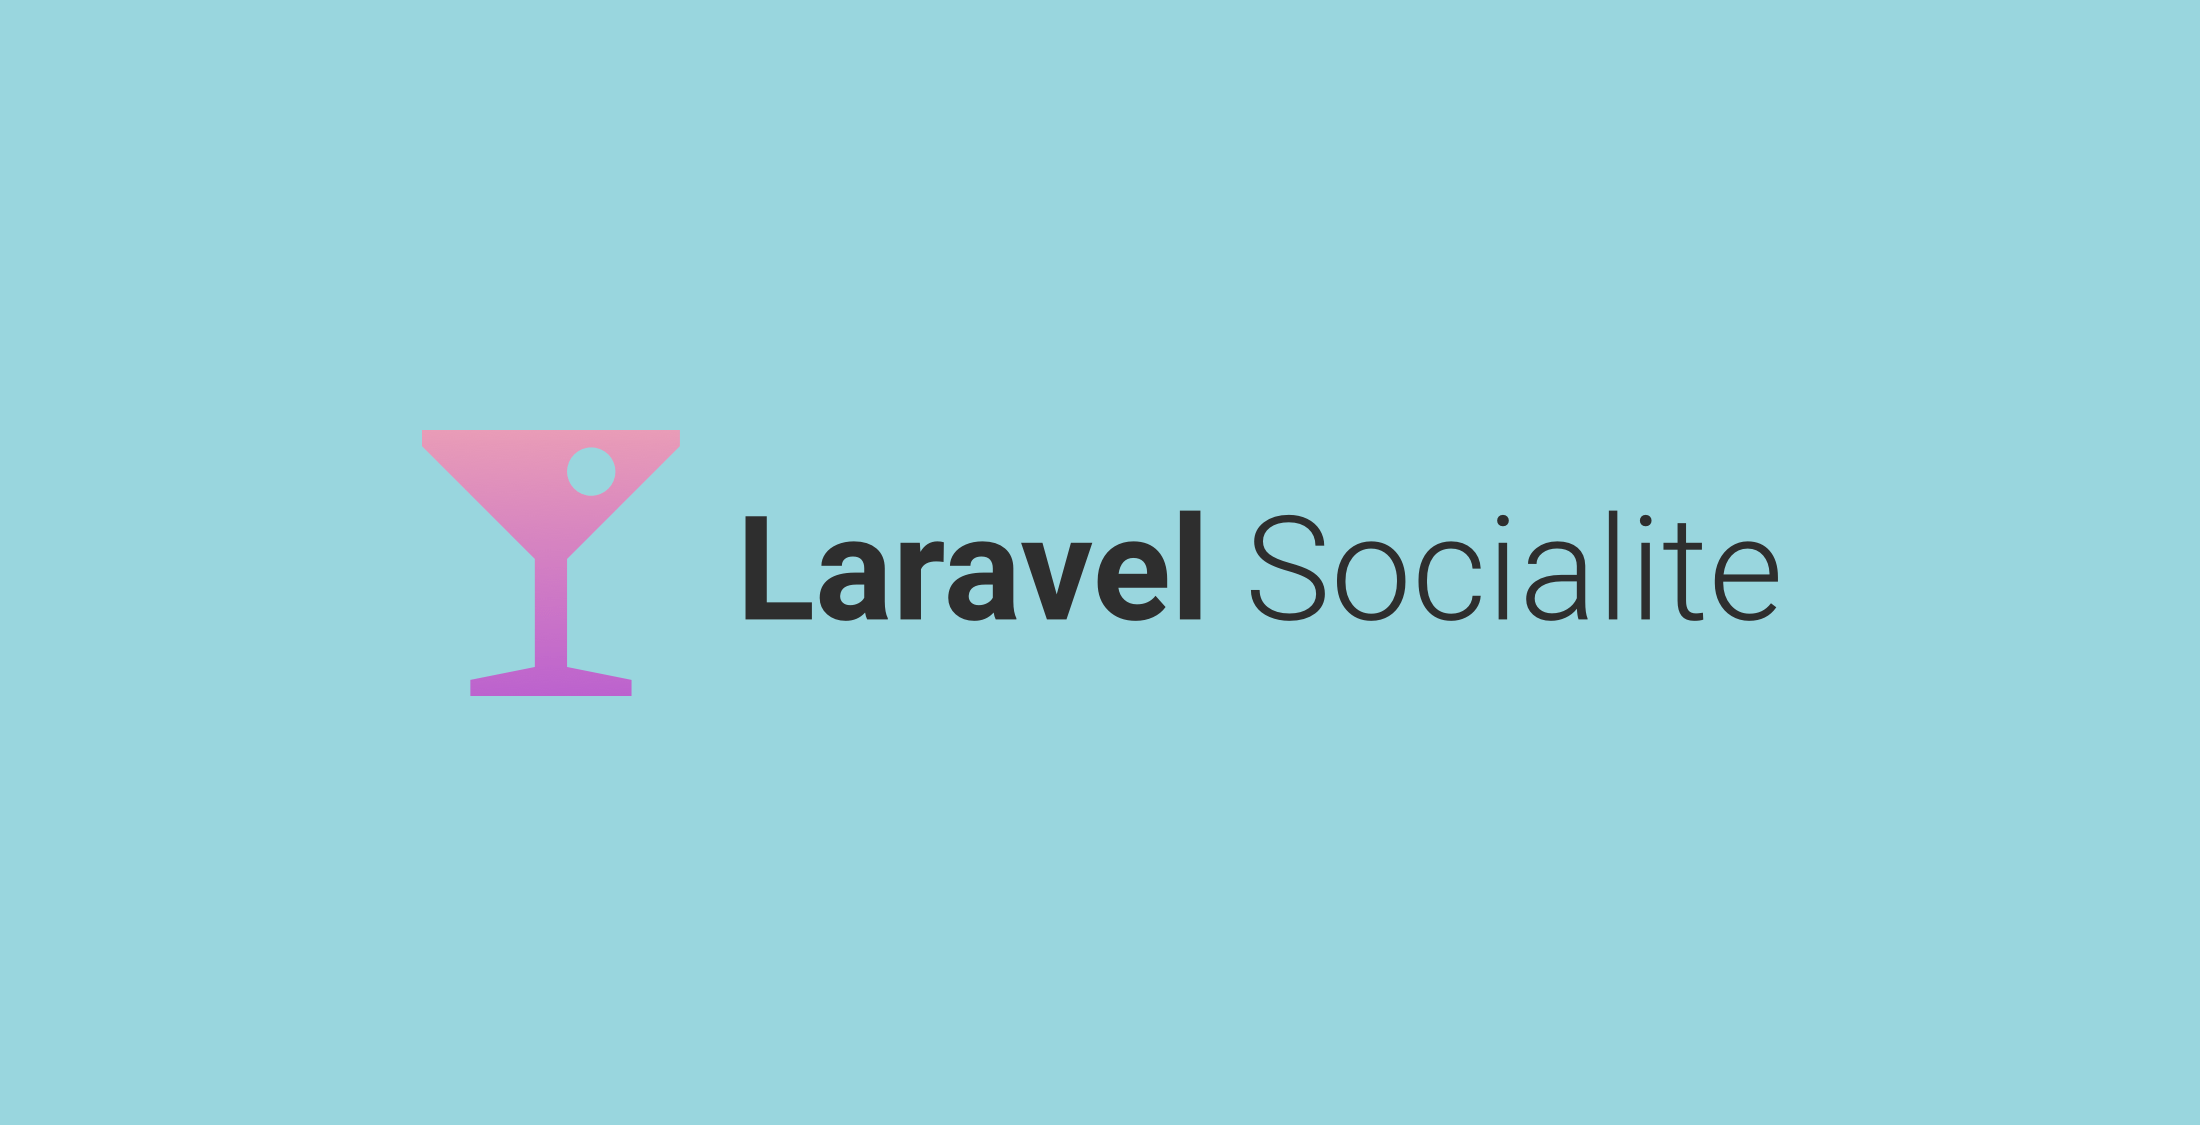 Laravel Socialite handles login with OAuth and is officially maintained by the Laravel team.